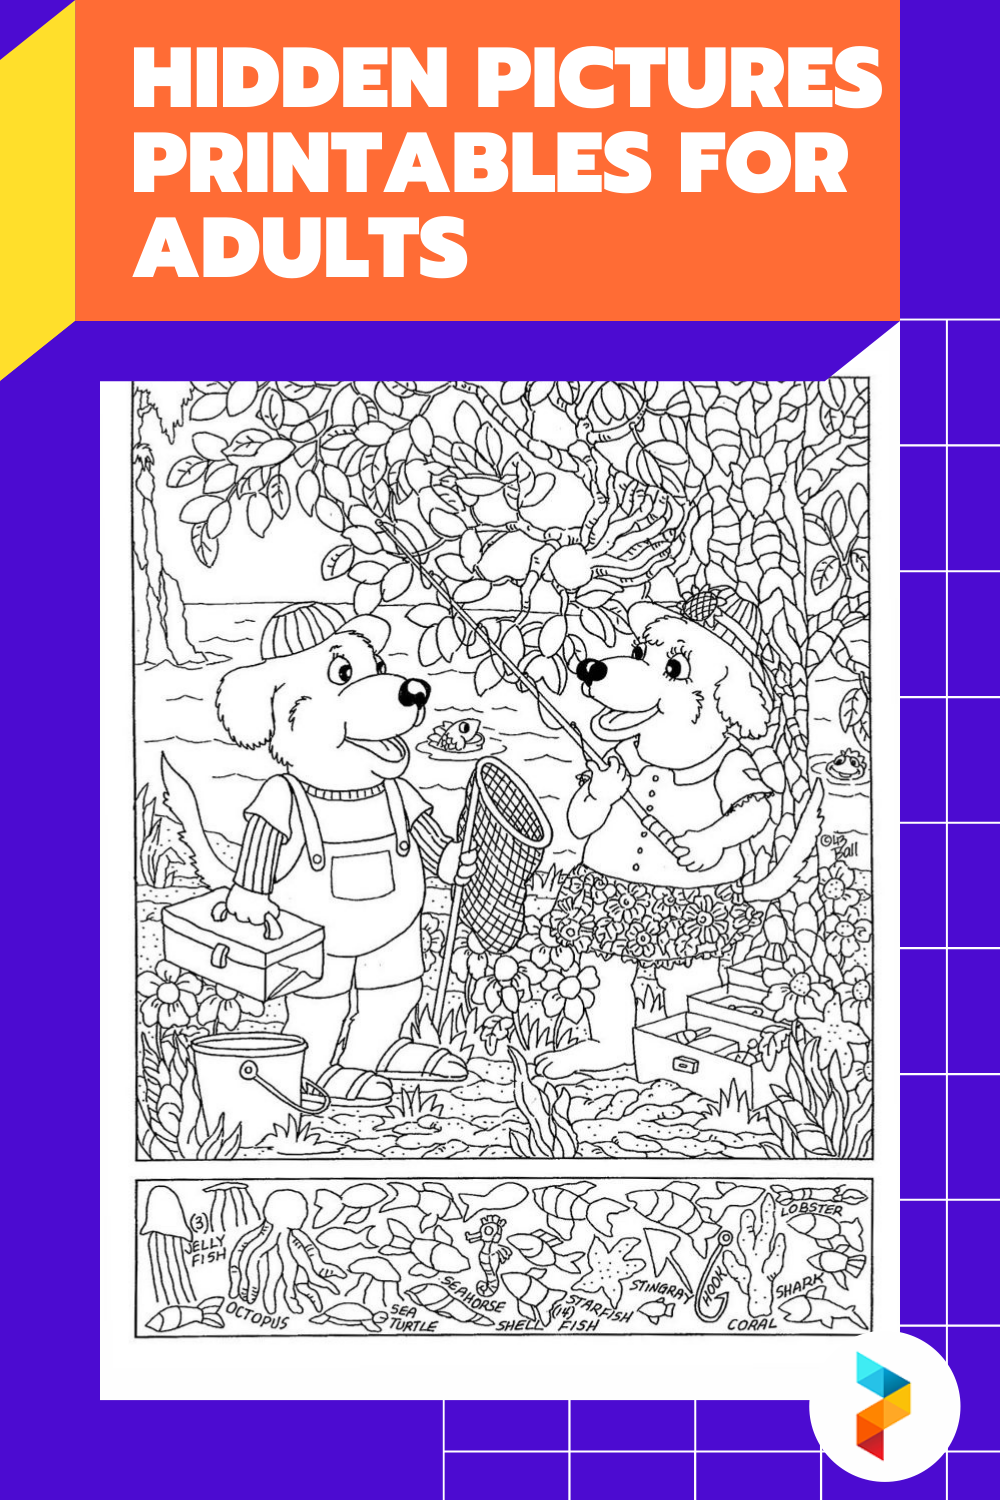 Hidden Pictures Printables For Adults